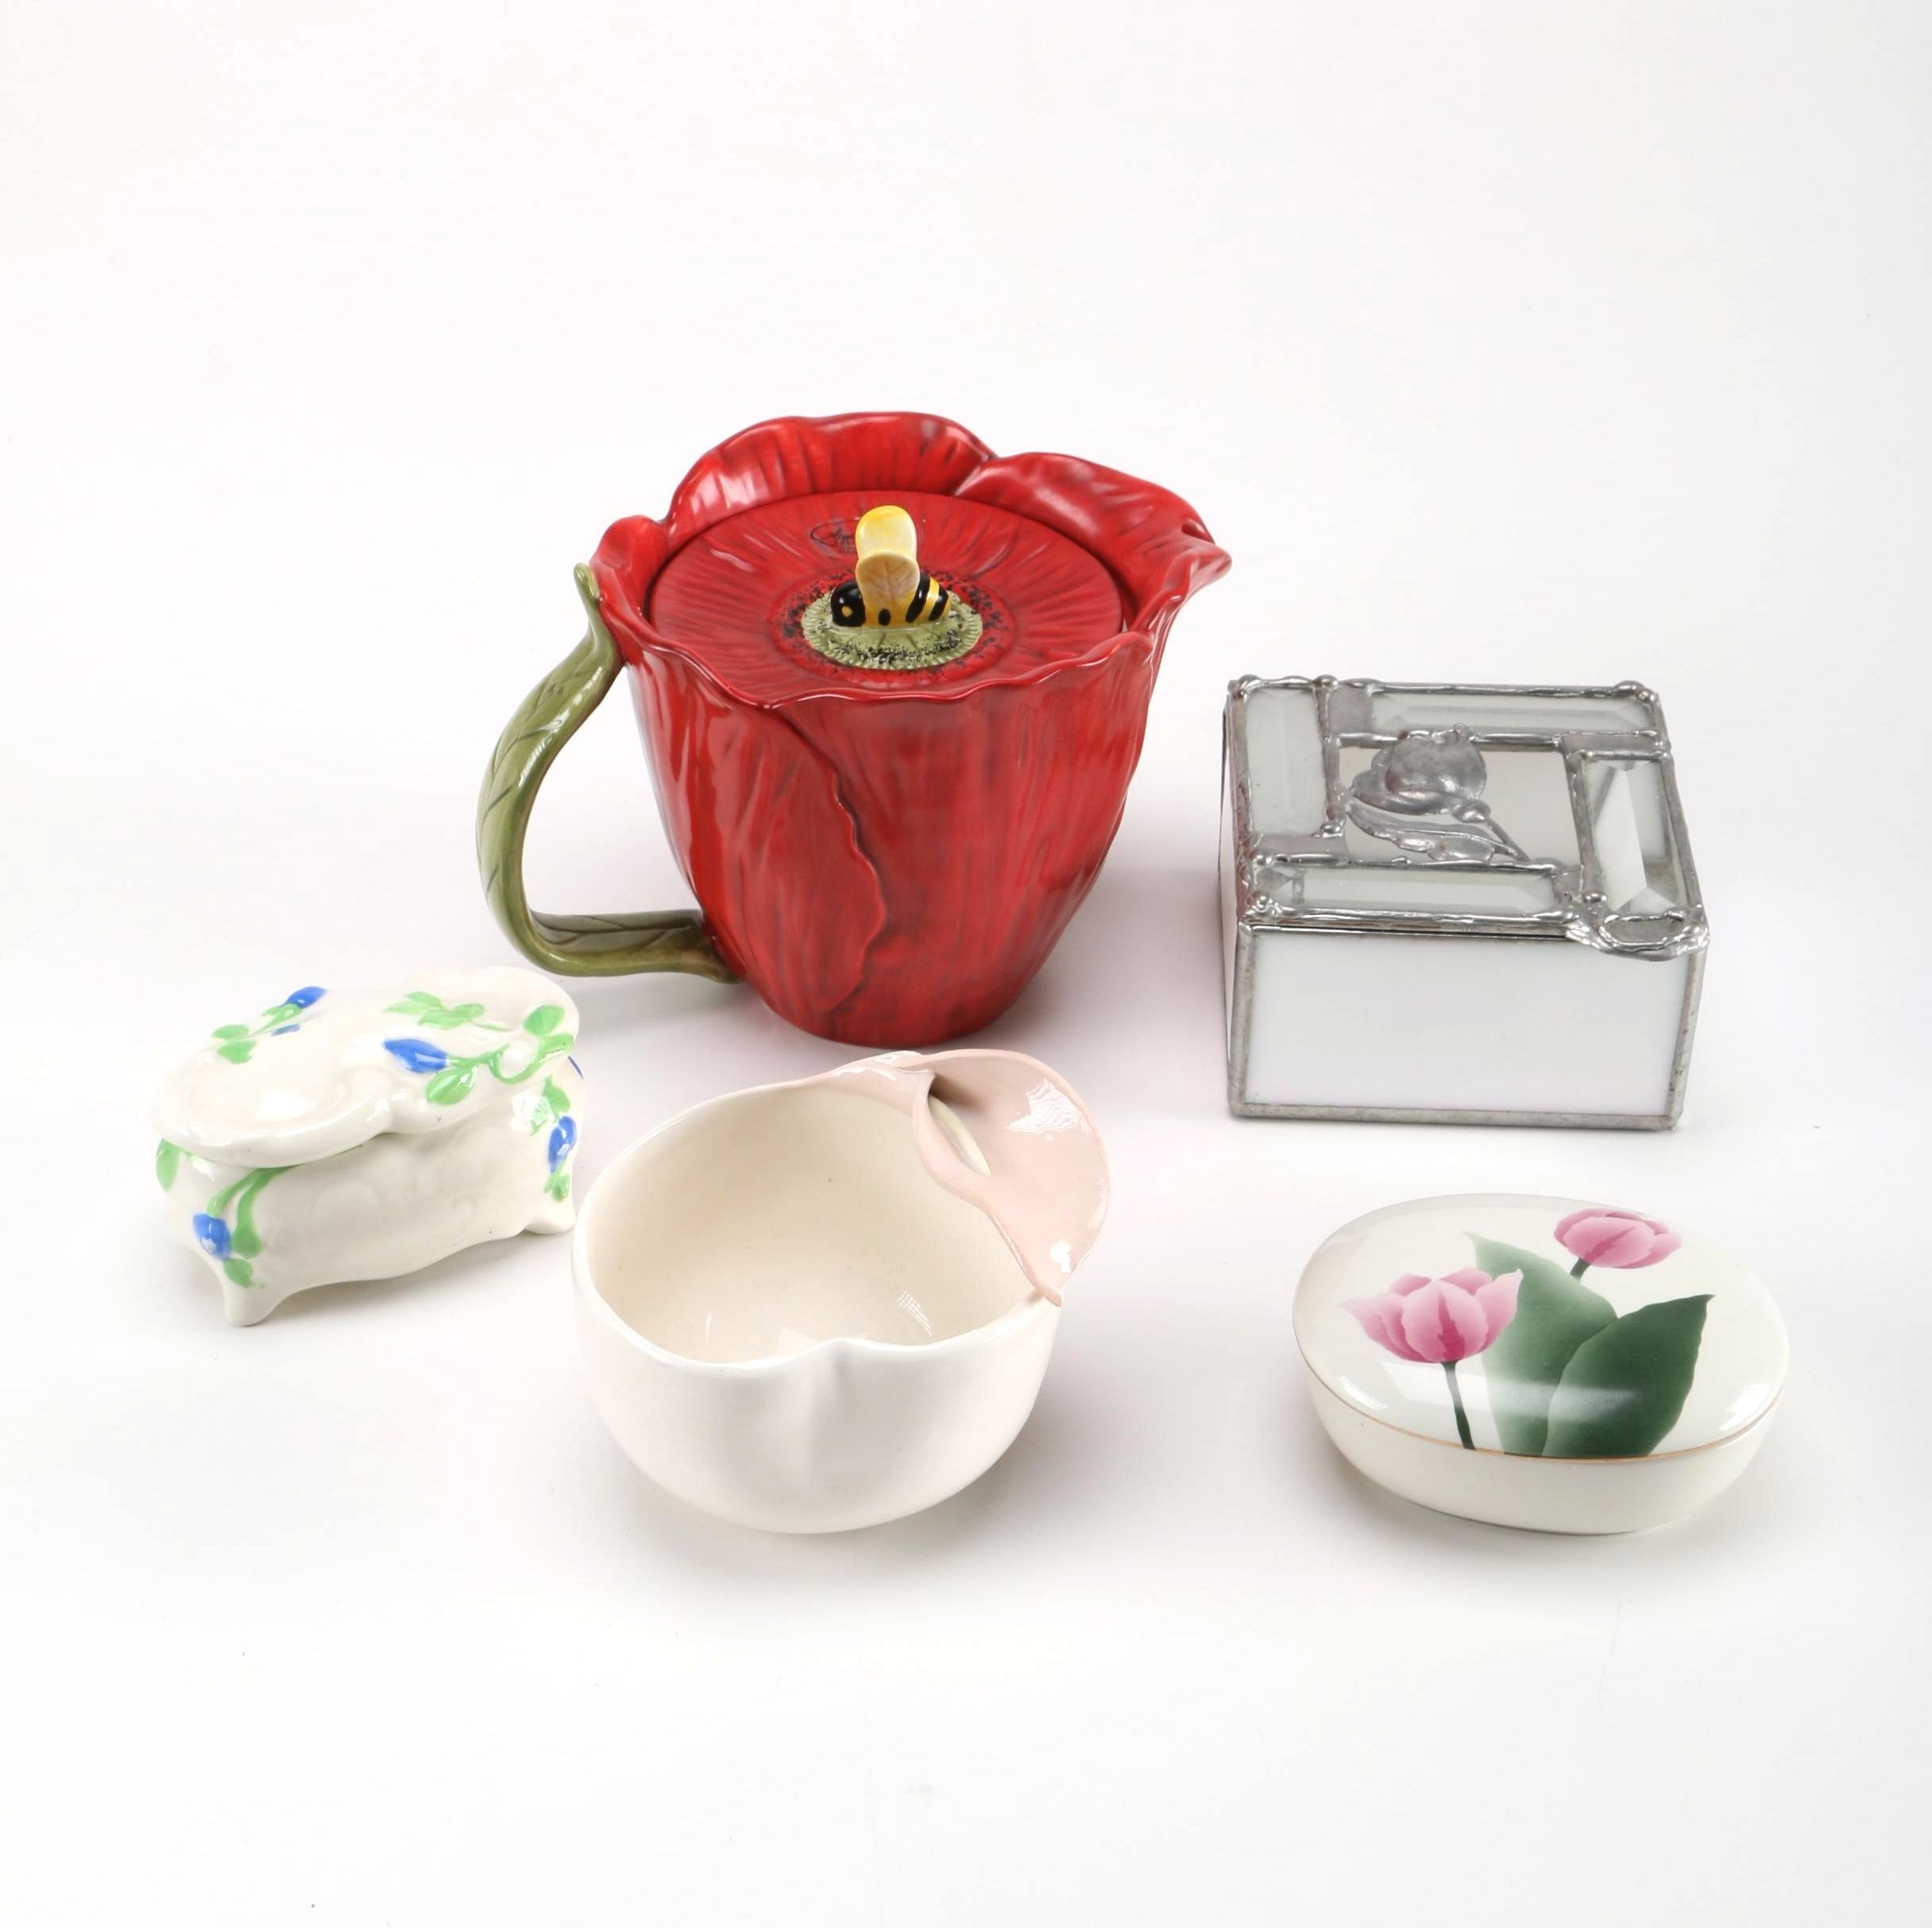 Floral Pitcher and Décor Featuring Otagiri